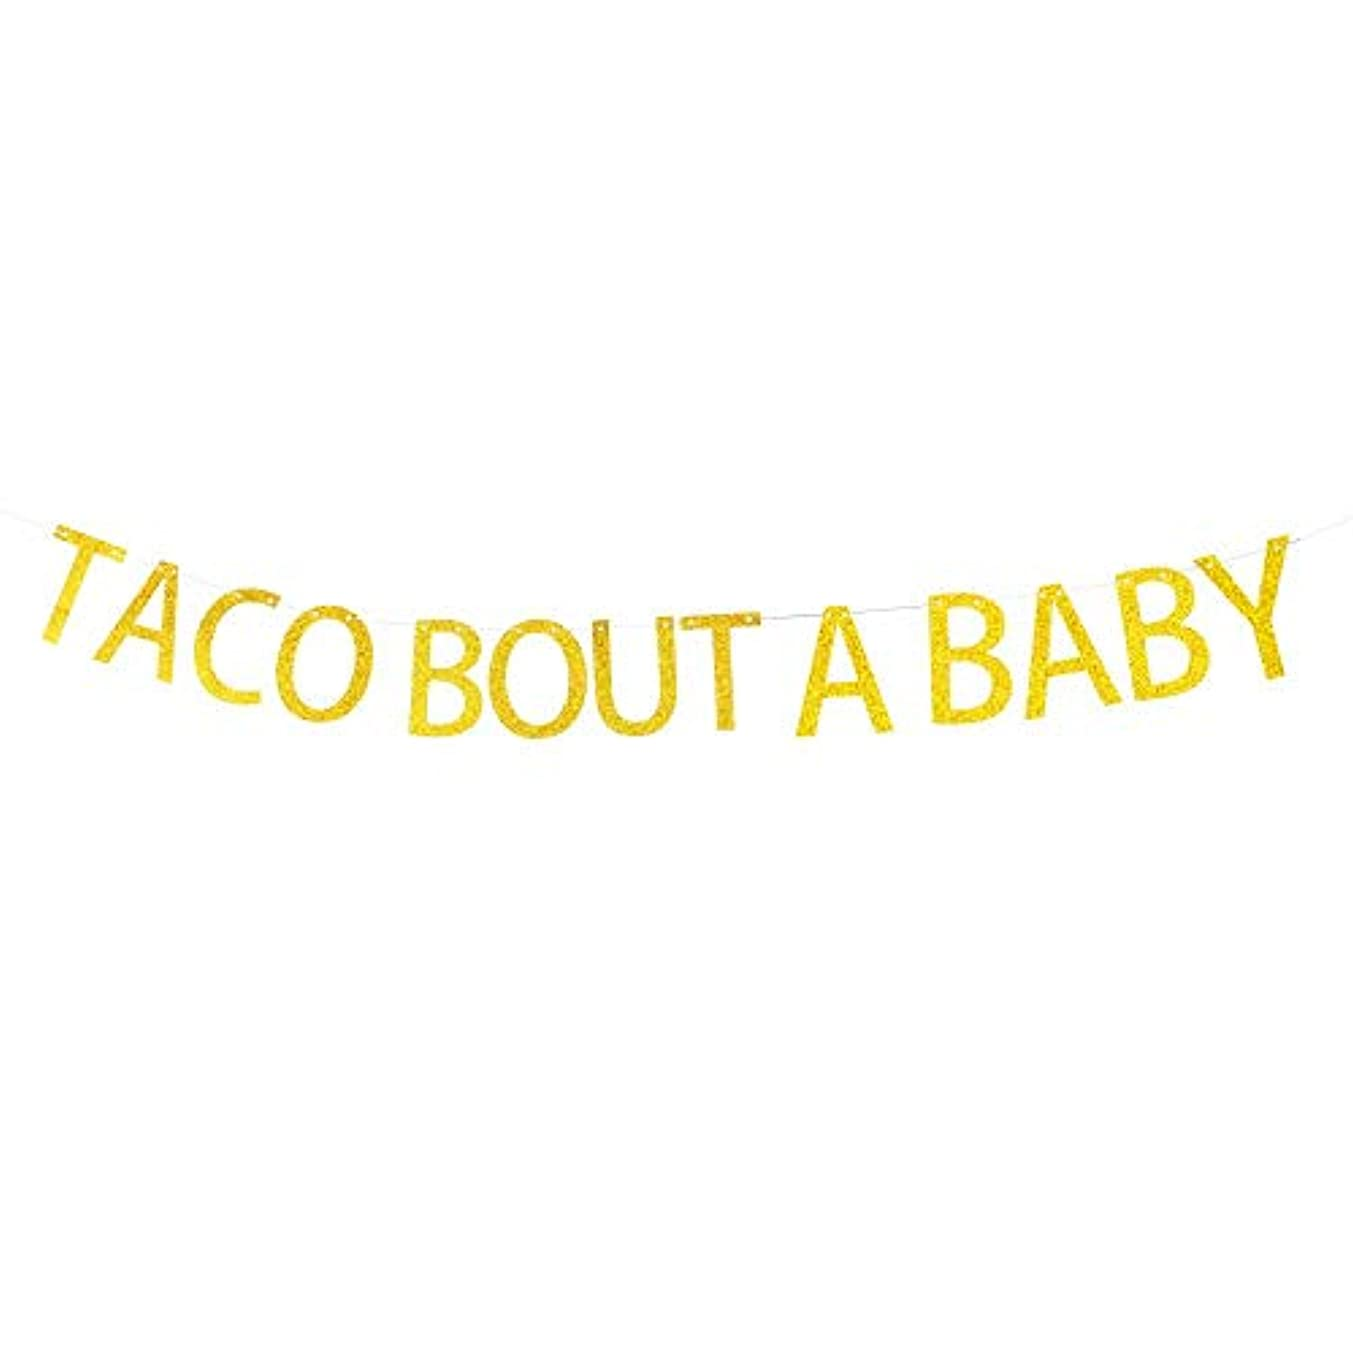 Taco Bout A Baby Banner Hanging Decor for Baby Shower,Baby Girl or Boy Birthday Party Decorations Gold Banner Pertlife